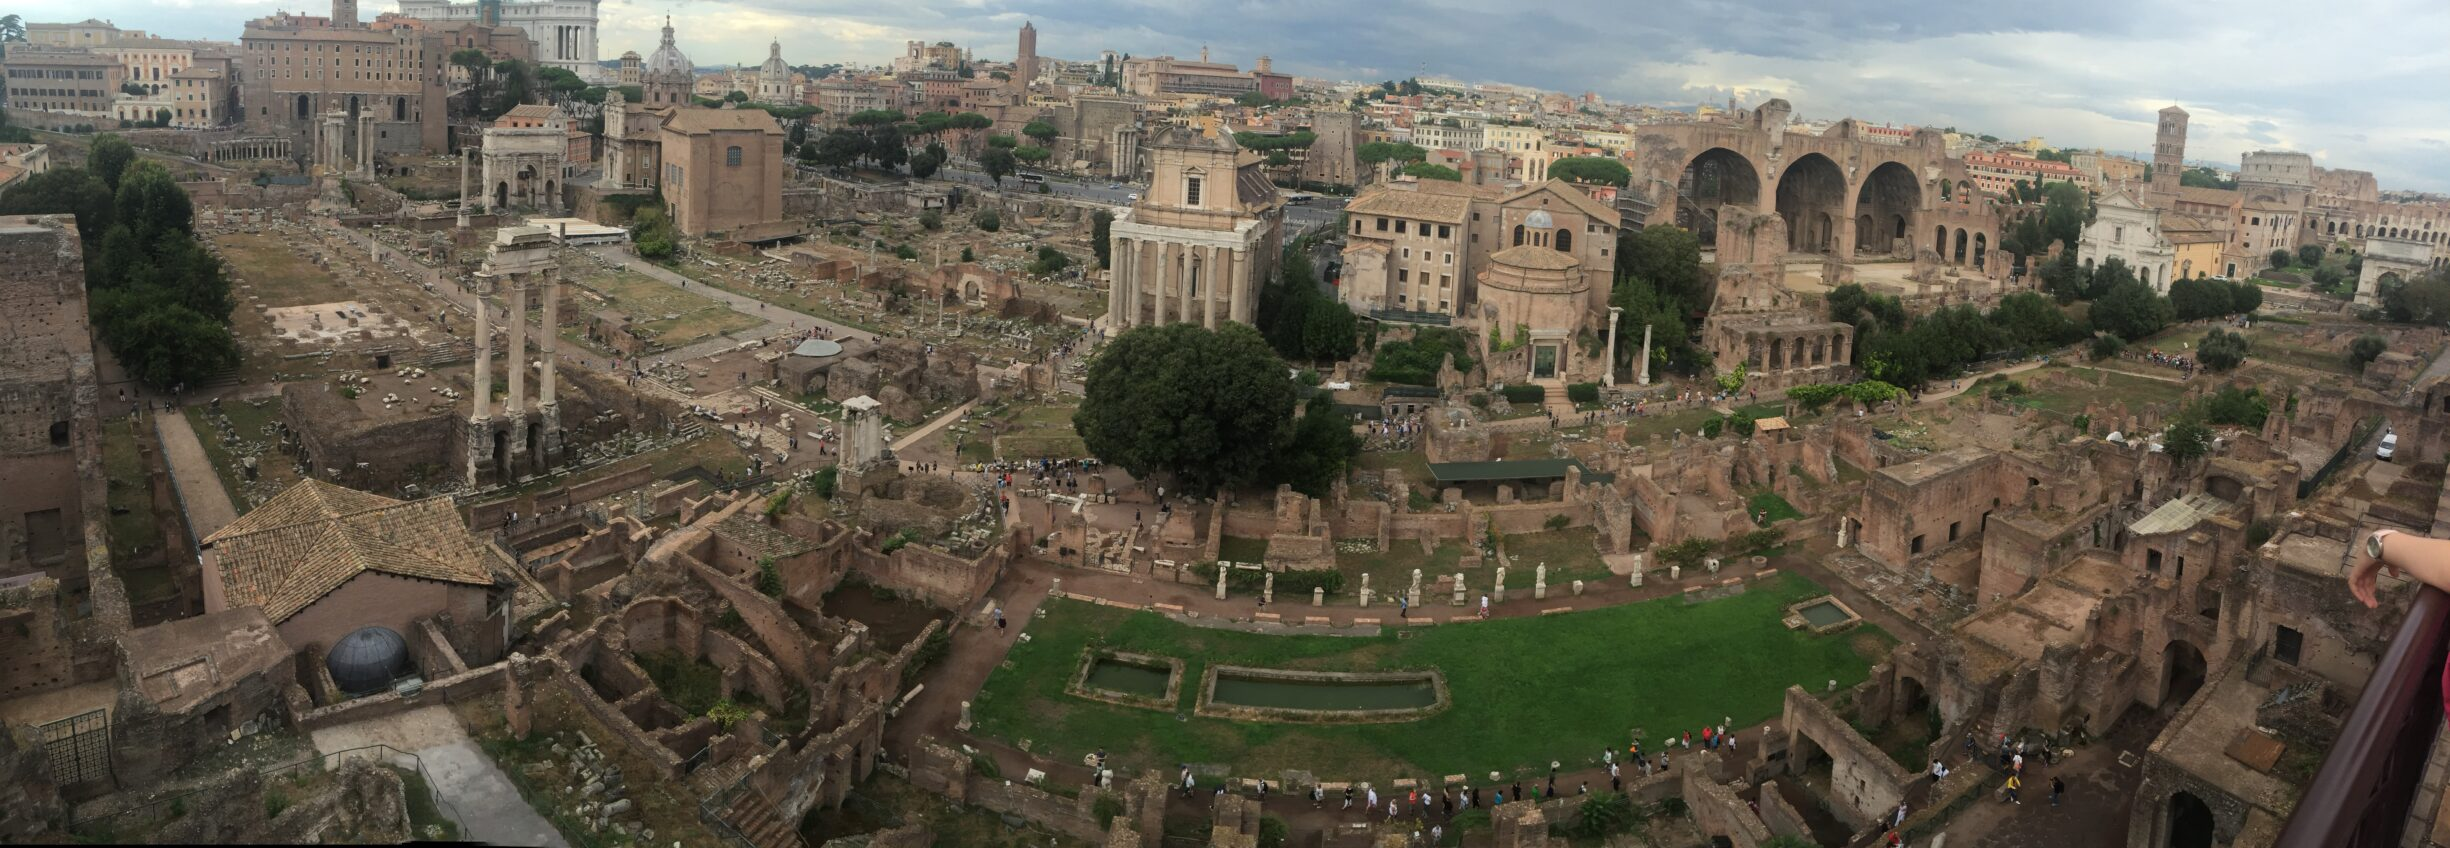 View of the Roman Forum from Palatine Hill with the Arco de Settimio Severo to the west (left) and the Colosseum to the east (right). Photo: Taken 7 September 2016 by Chalaph. (CC BY-SA 4.0).